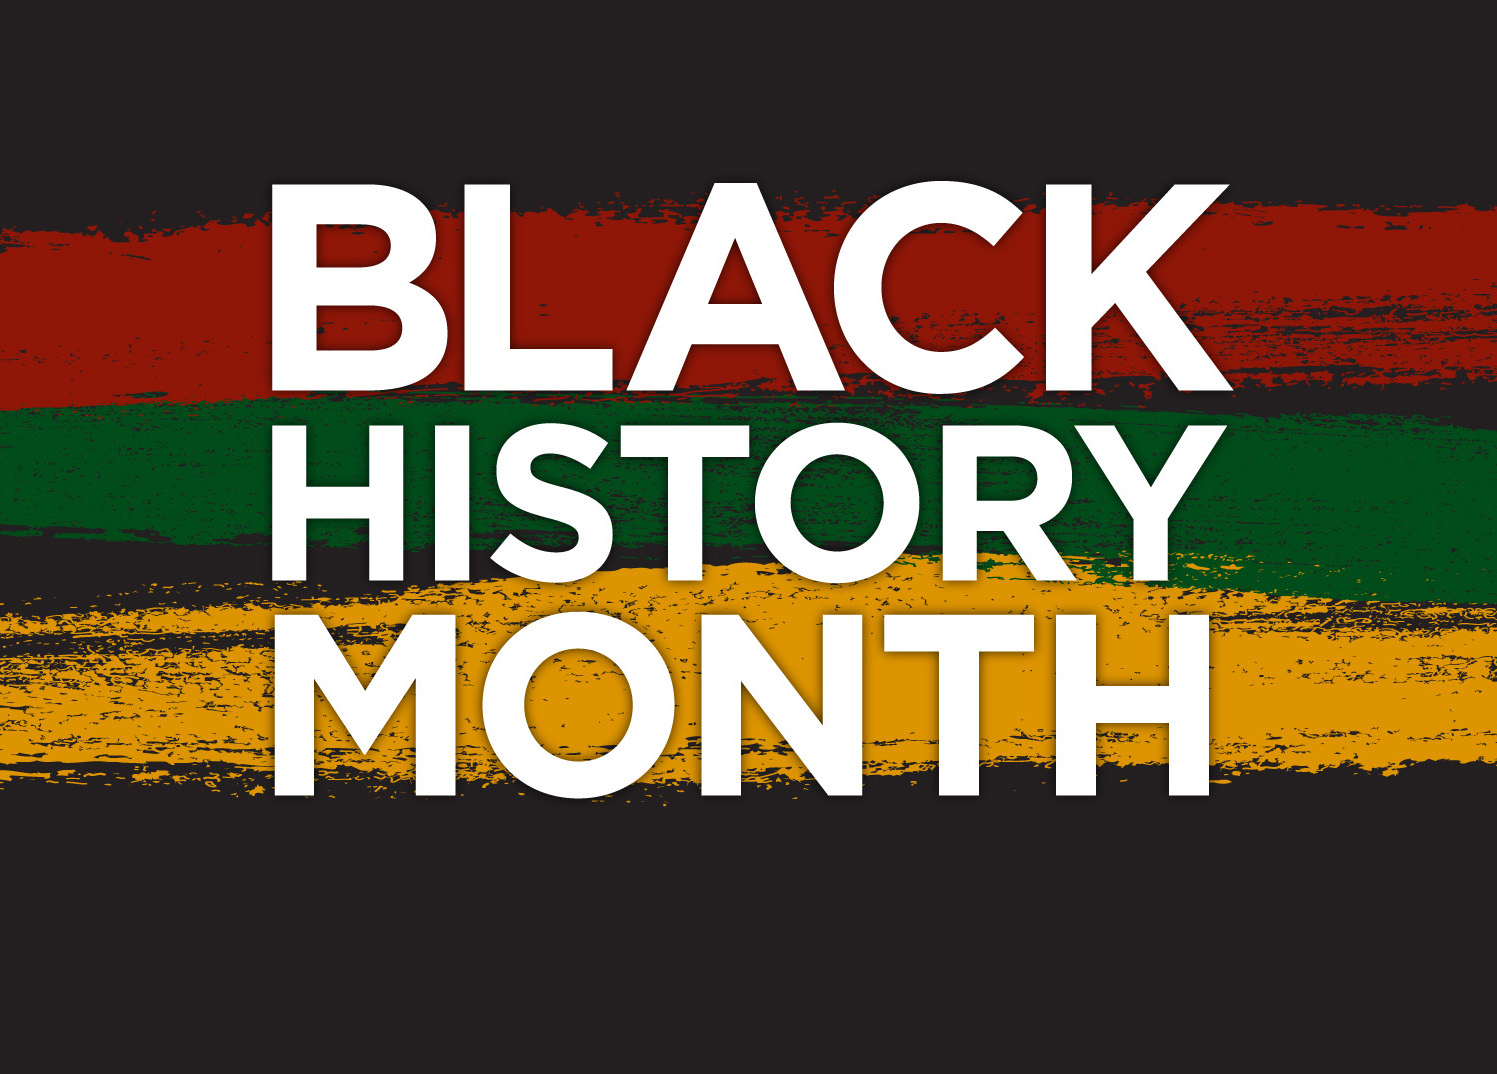 black-history-month-and-pictures-free-young-teen-homemade-pictures